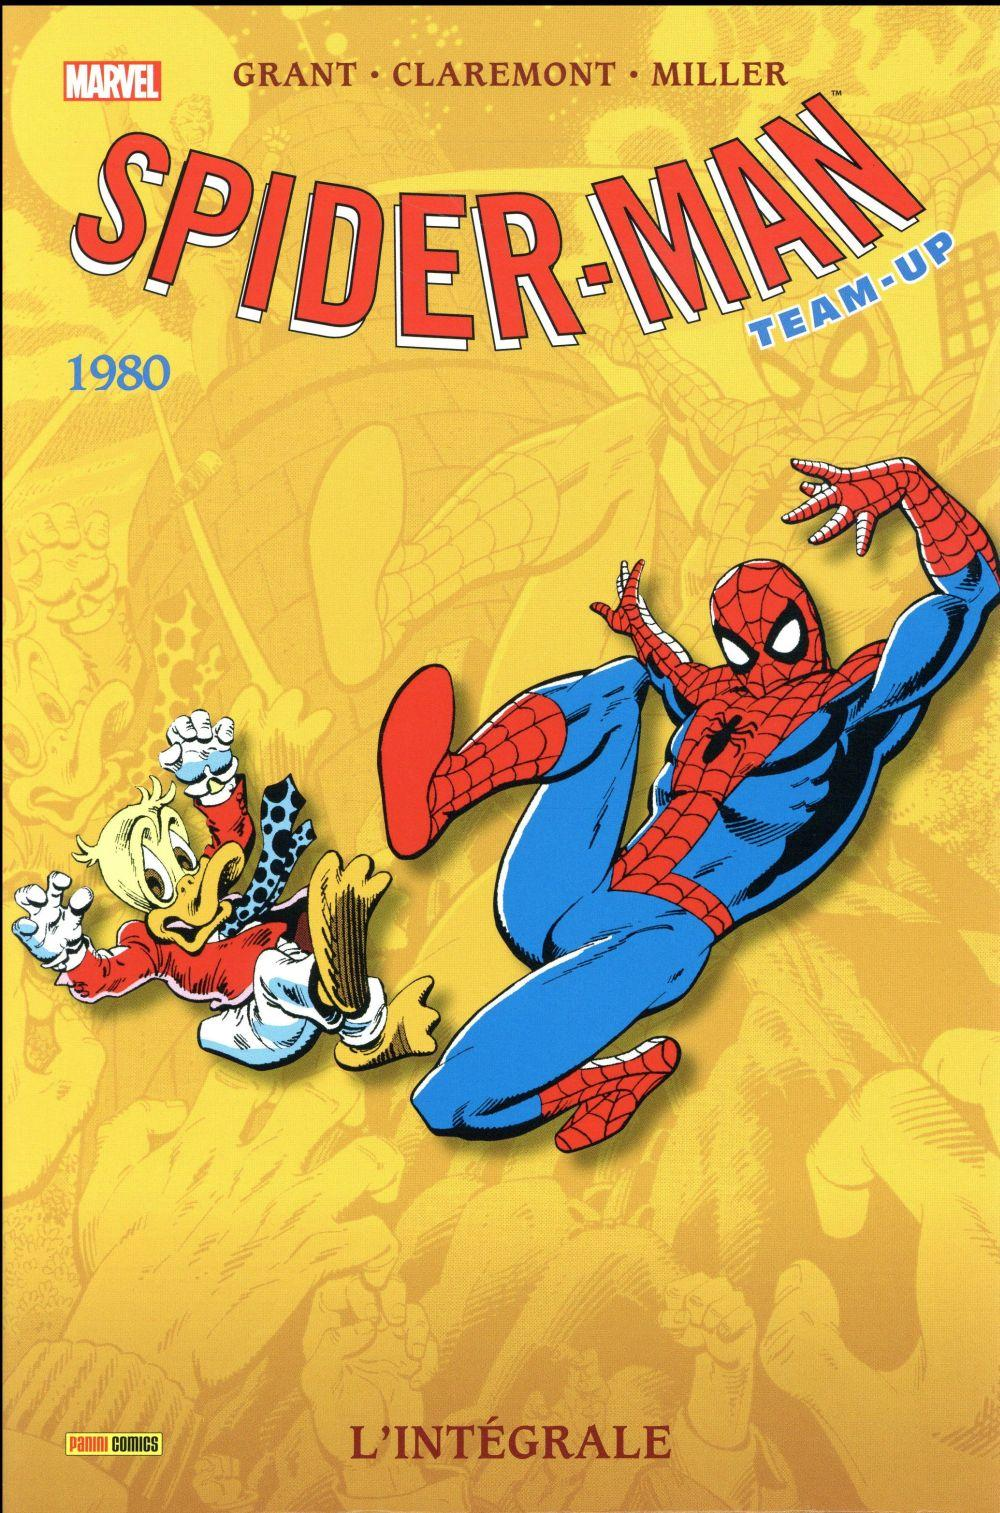 Spider-Man - team up ; INTEGRALE ; 1980  - Collectif